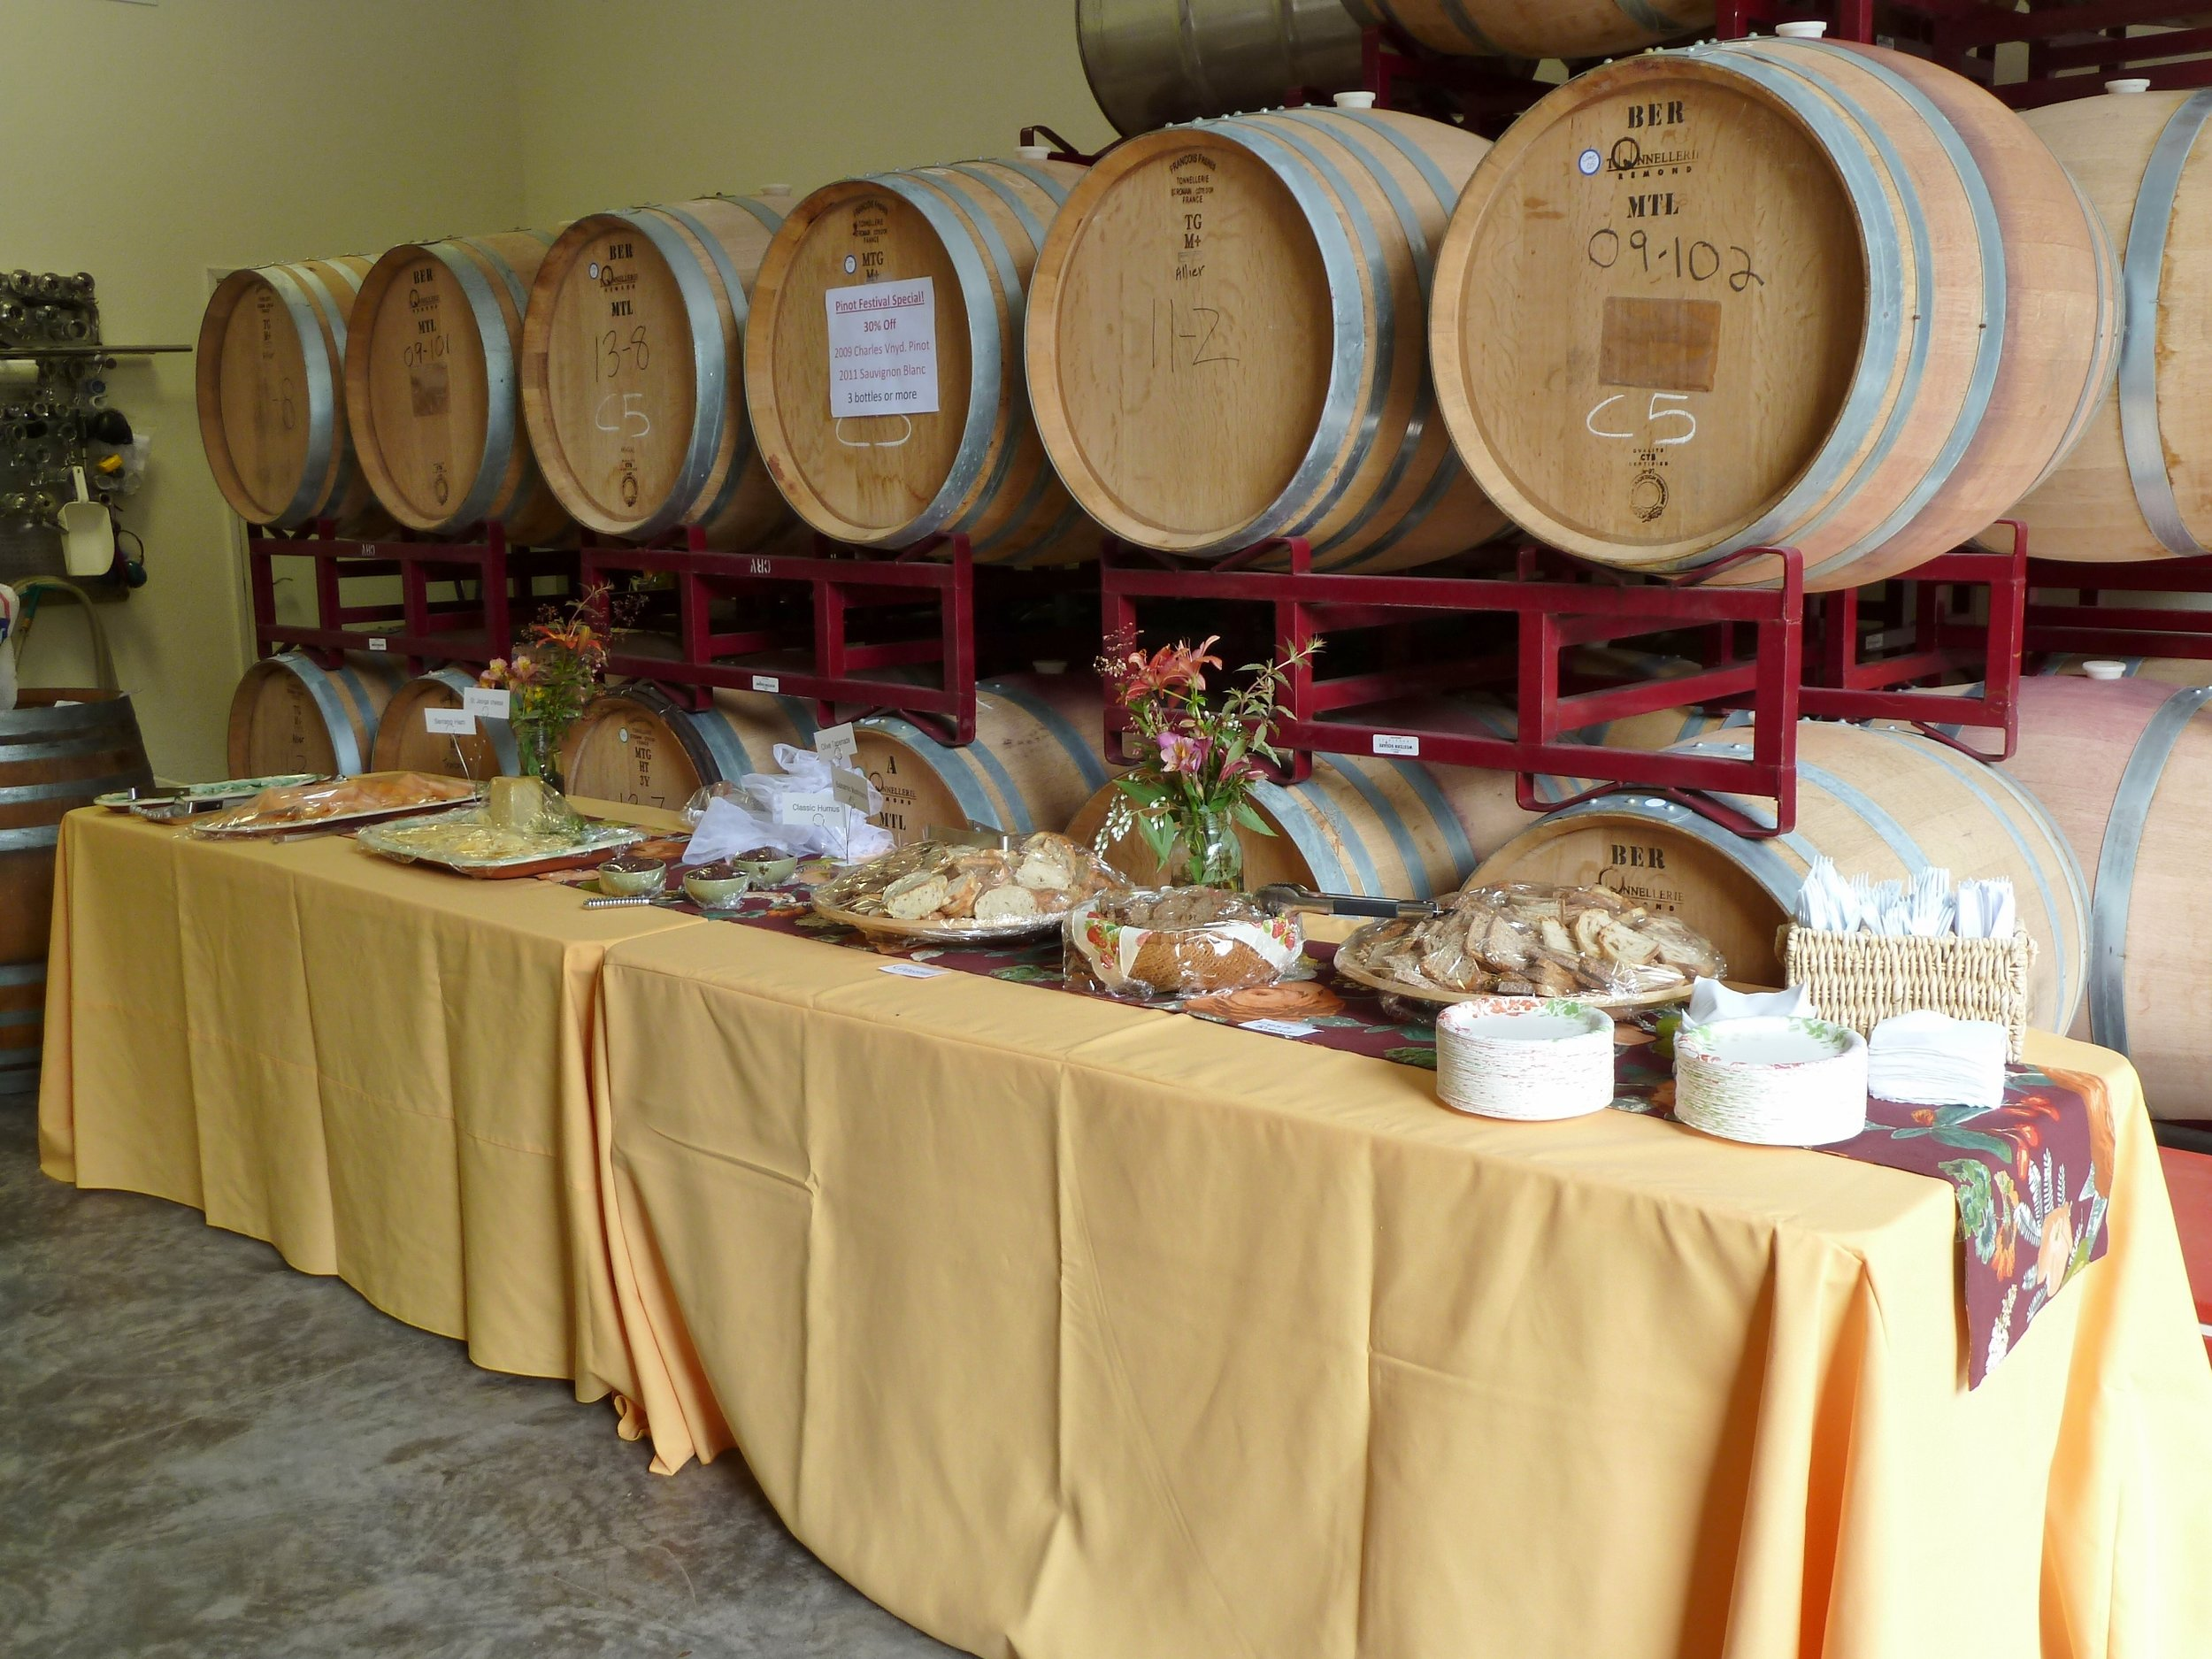 Food in front of barrels.JPG